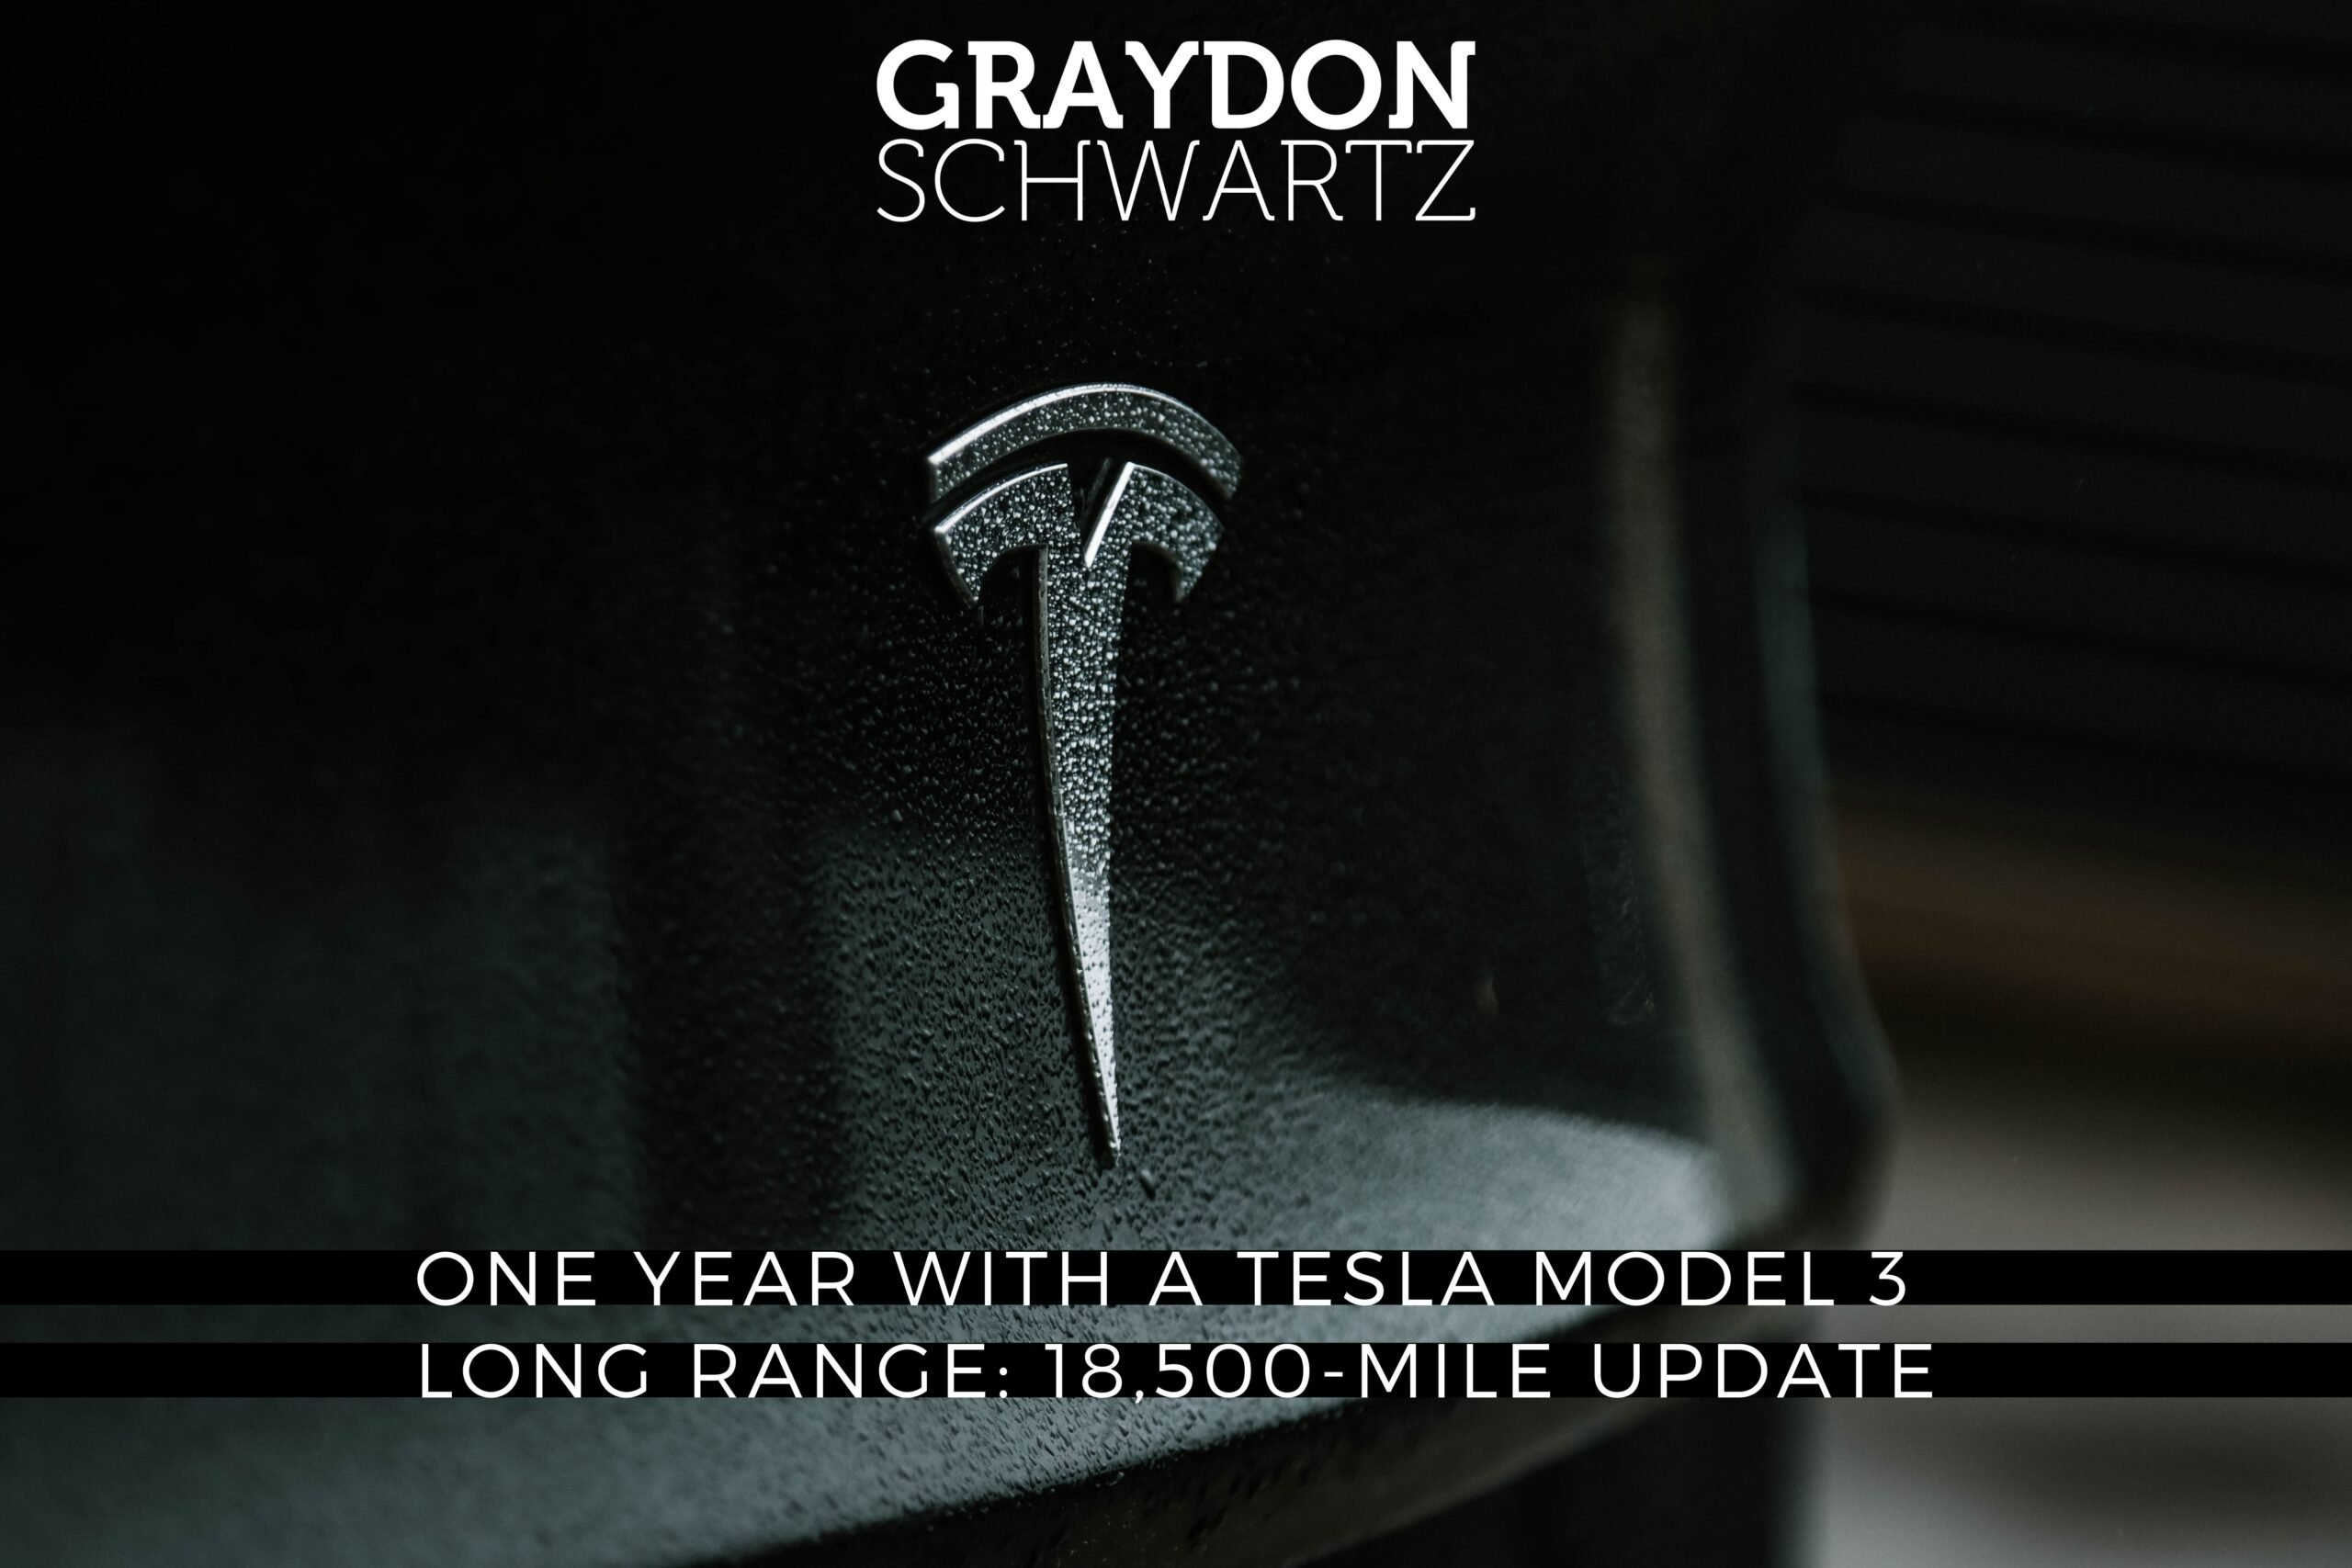 One Year With a Tesla Model 3 Long Range: 18,500-Mile Update